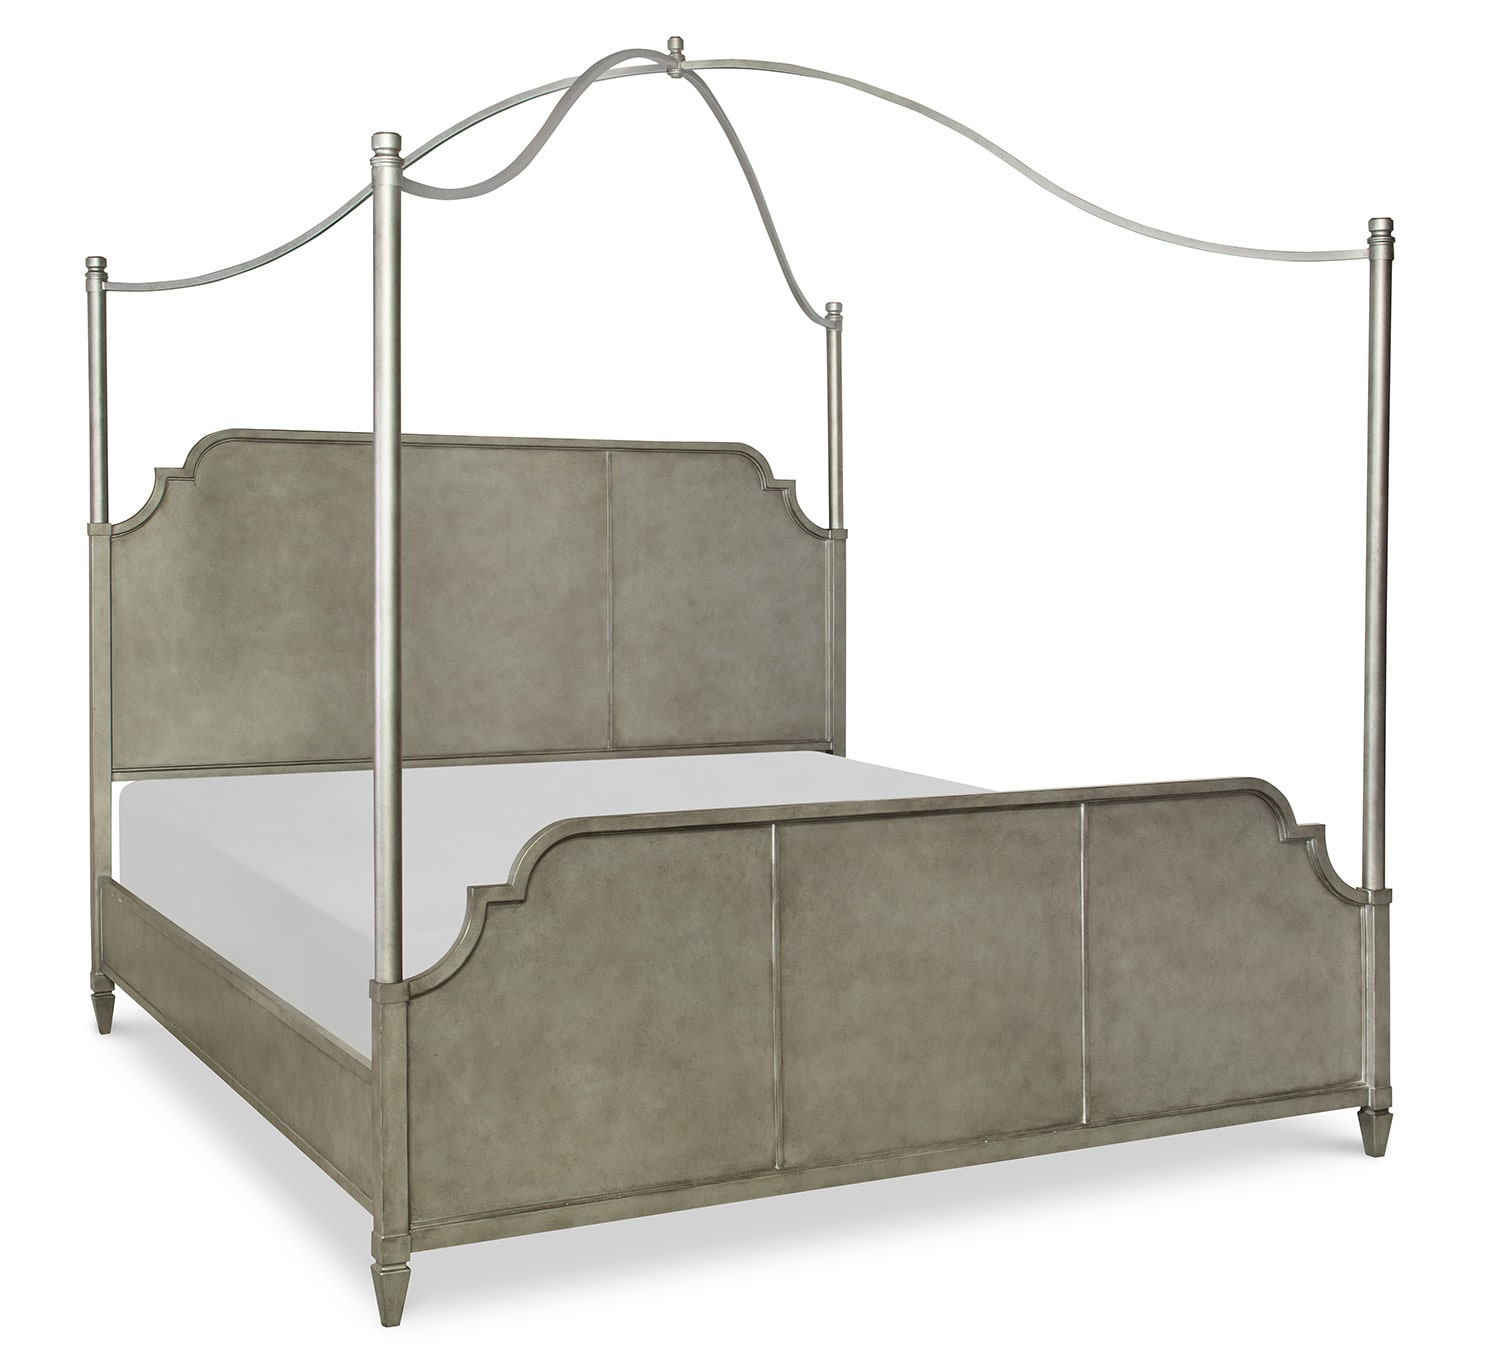 Rachael Ray Upstate Queen Canopy Bed - Pewter